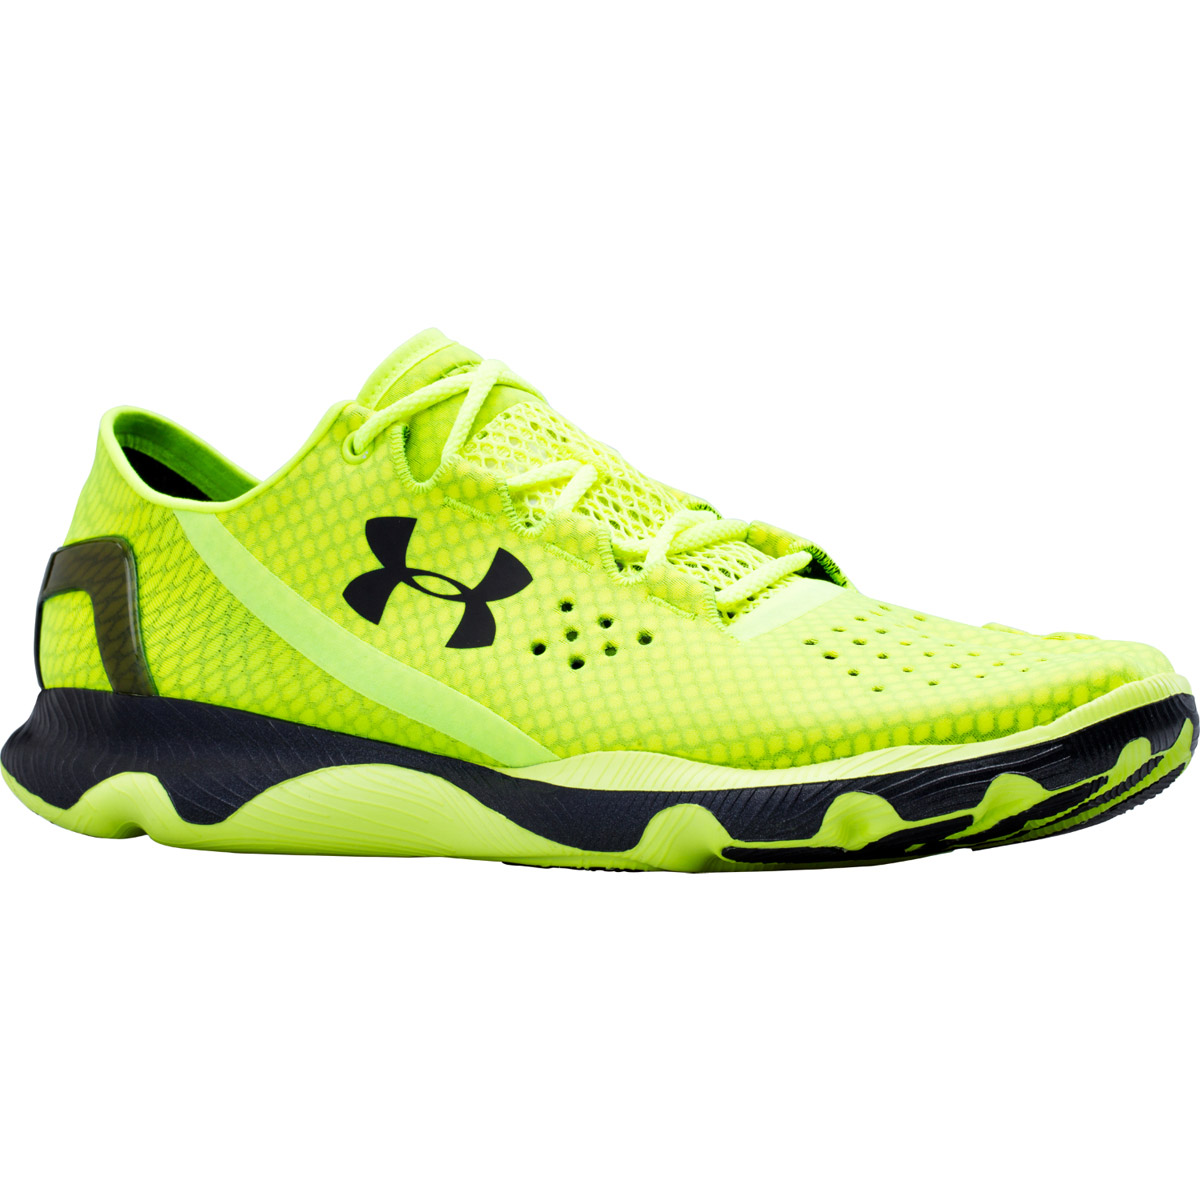 neon yellow under armour shoes